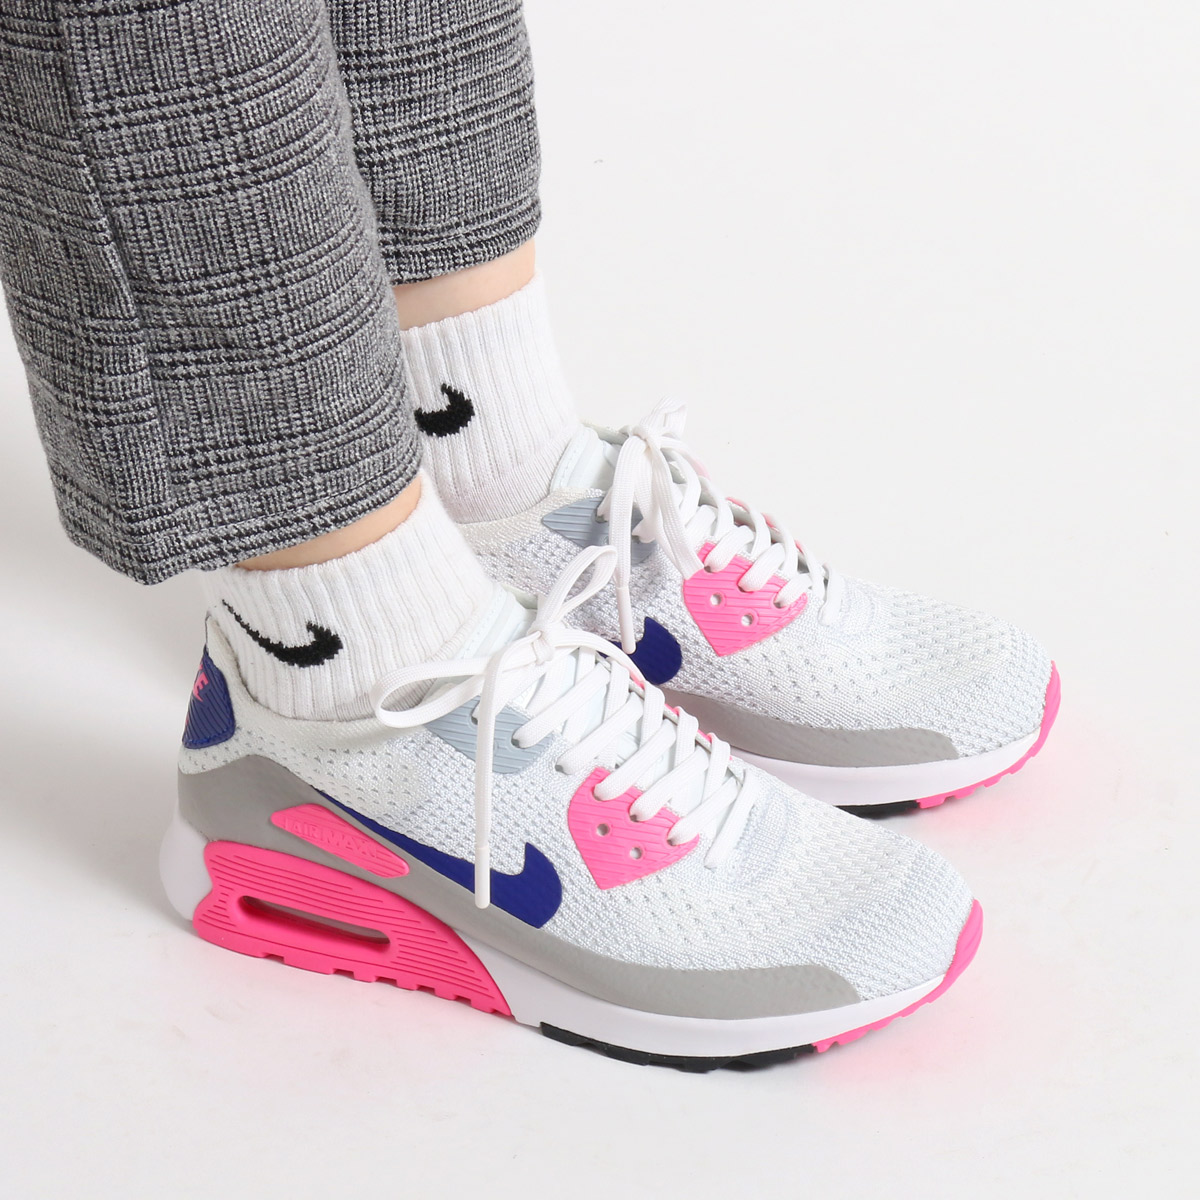 new product 061eb 152b0 ... NIKE W AIR MAX 90 ULTRA 2.0 FLYKNIT (Nike we Lady s Air Max 90 ultra ...